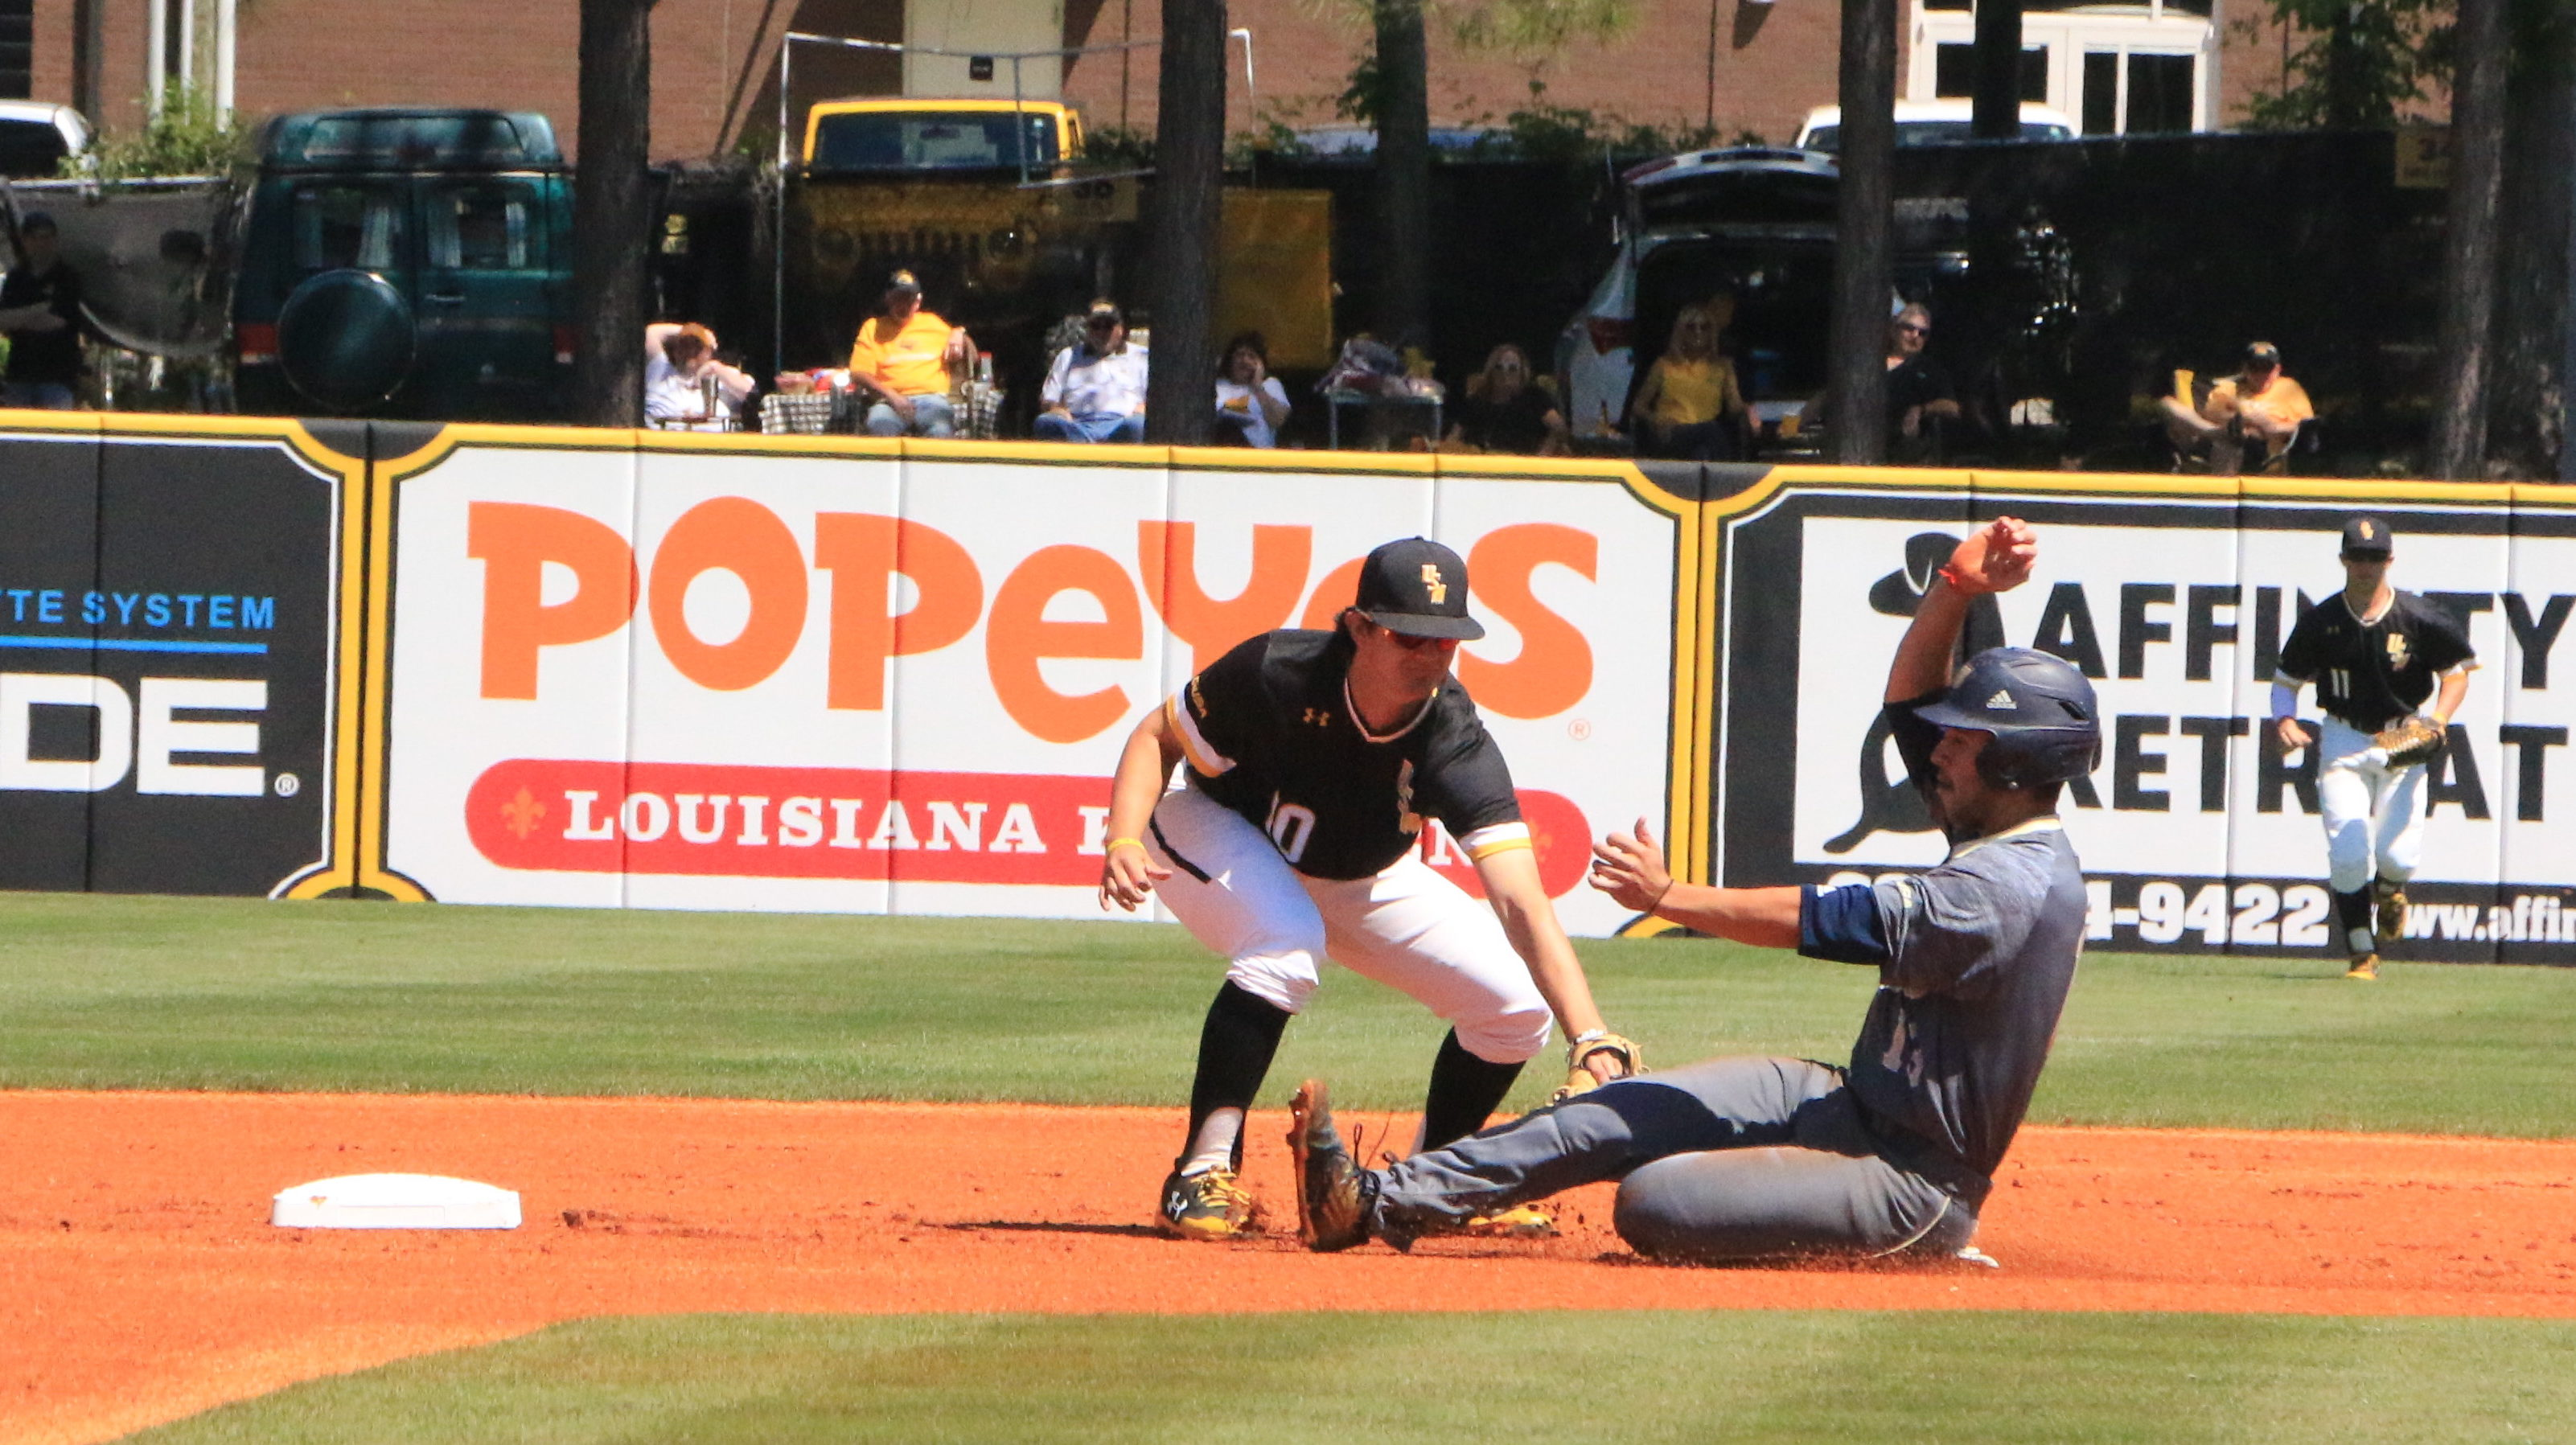 Golden Eagles grind out 5-1 win over FIU